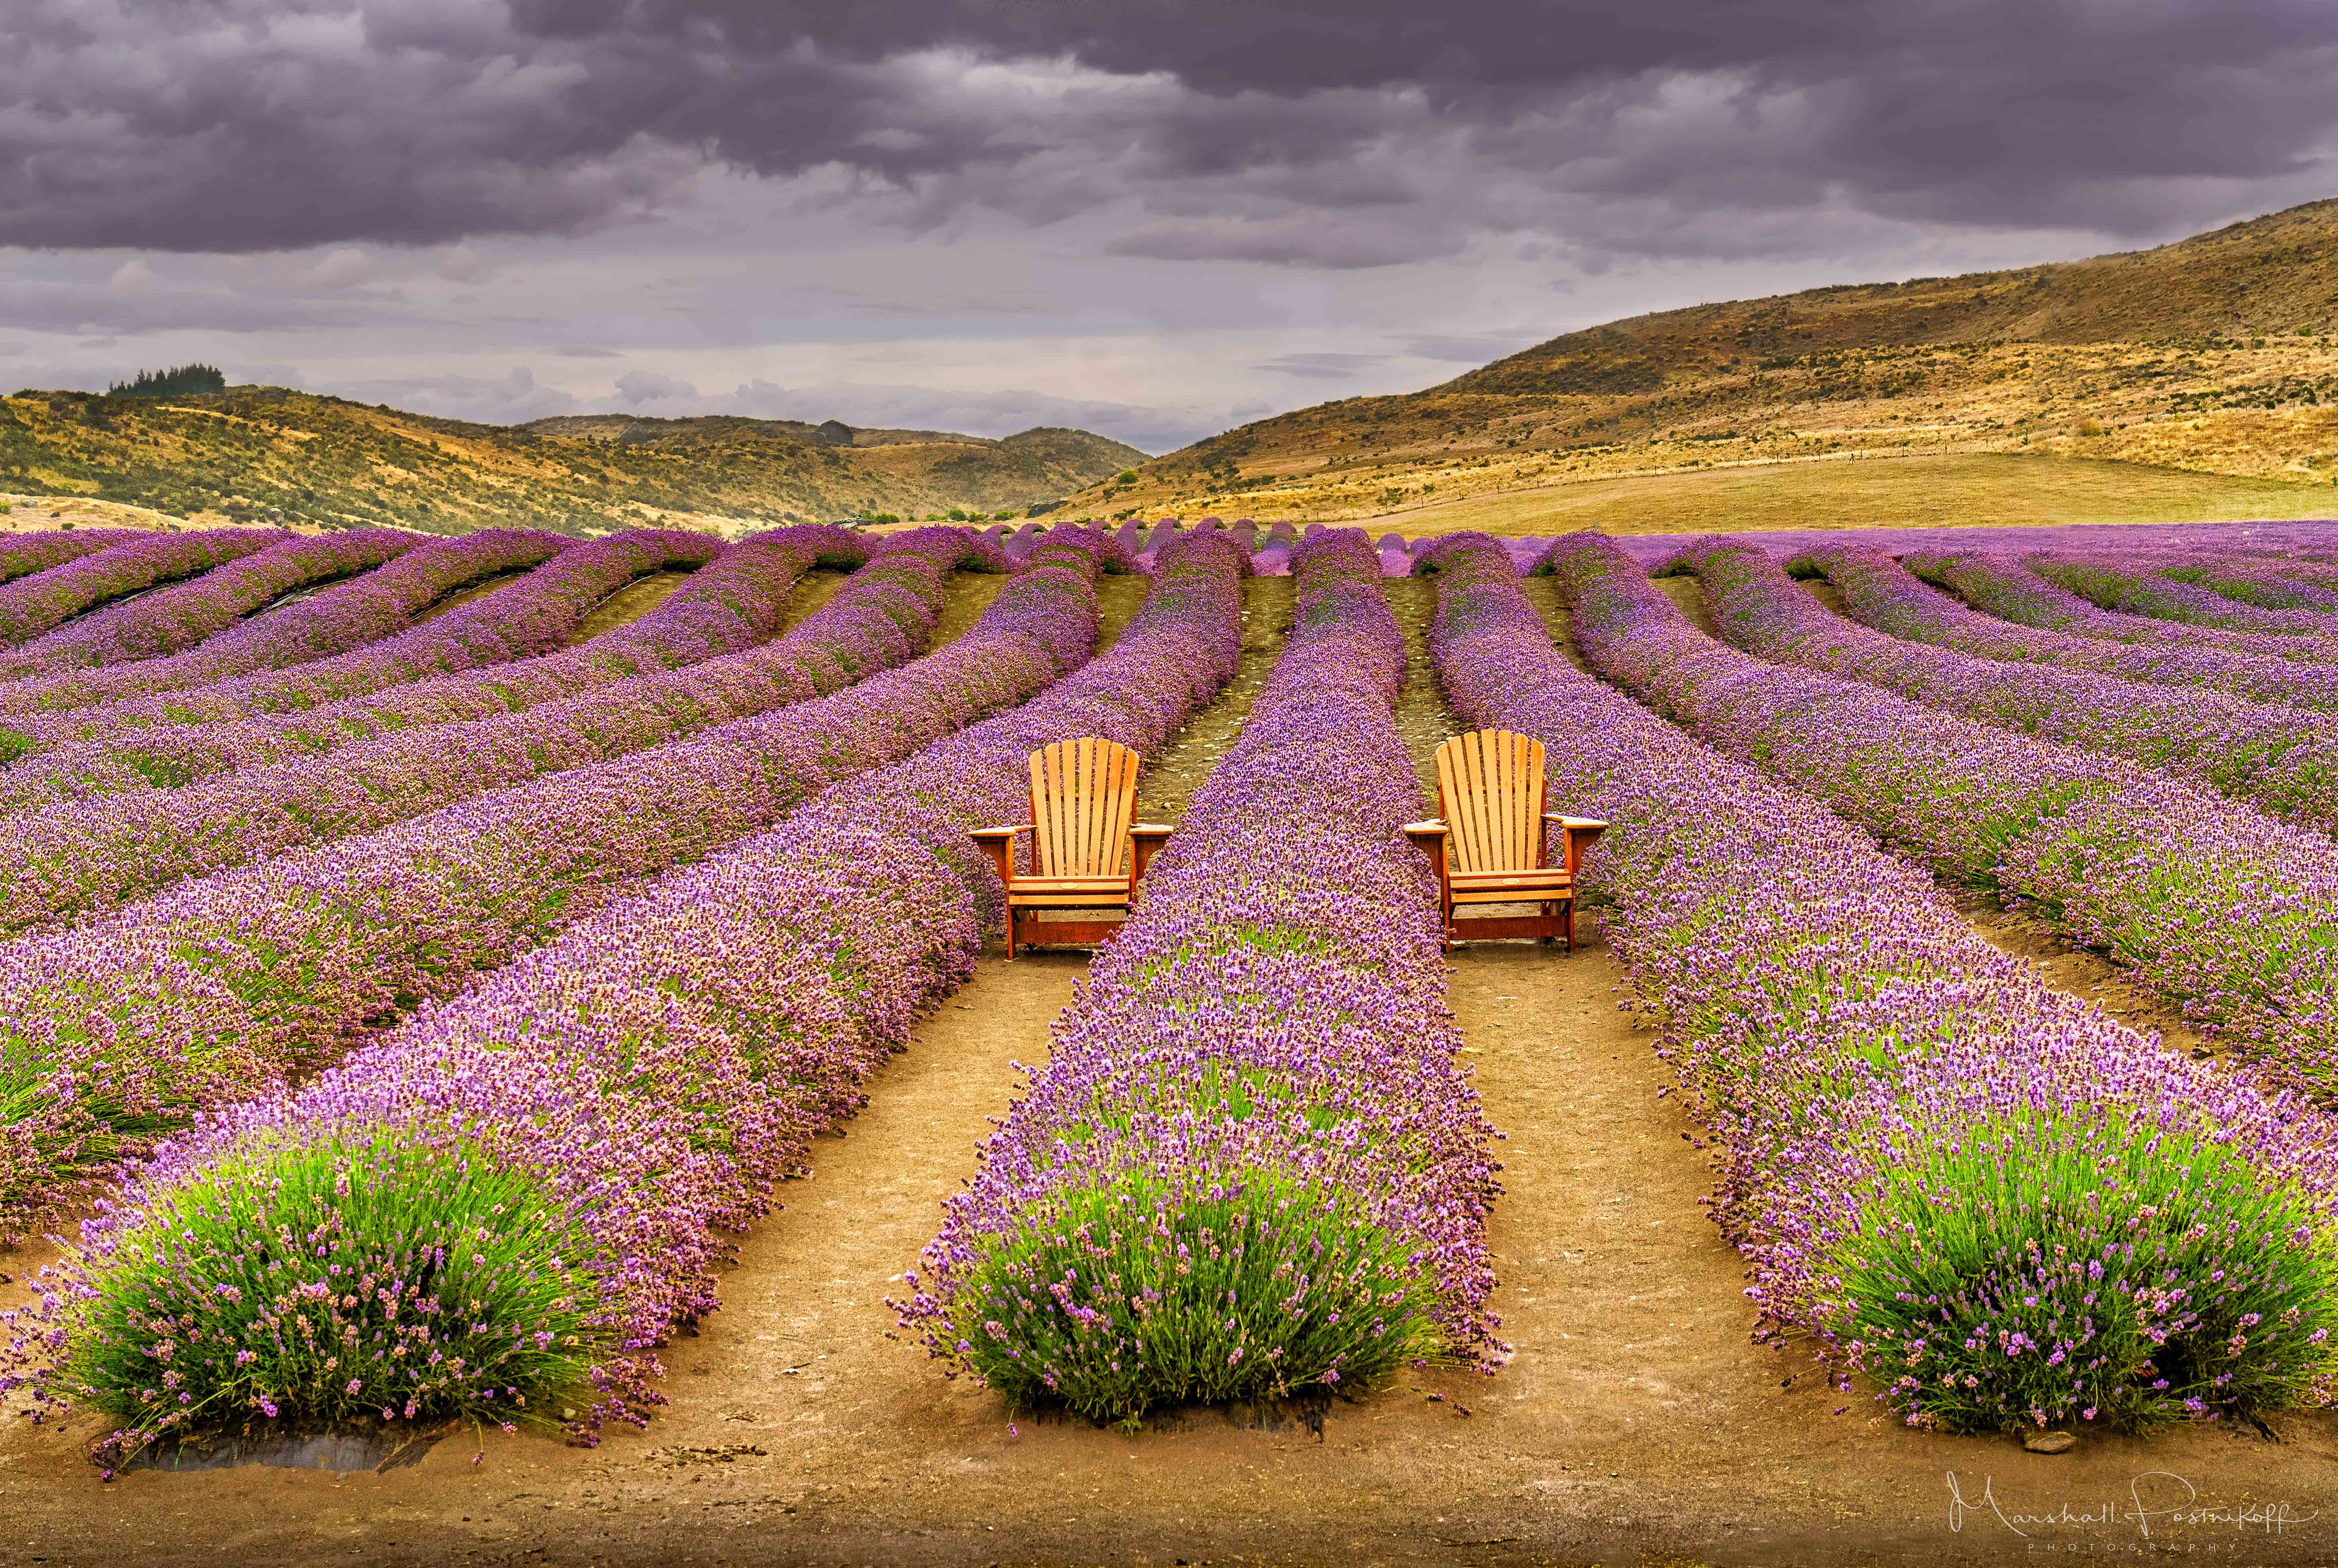 Photo of fields of lavender by Marshall Postnikoff